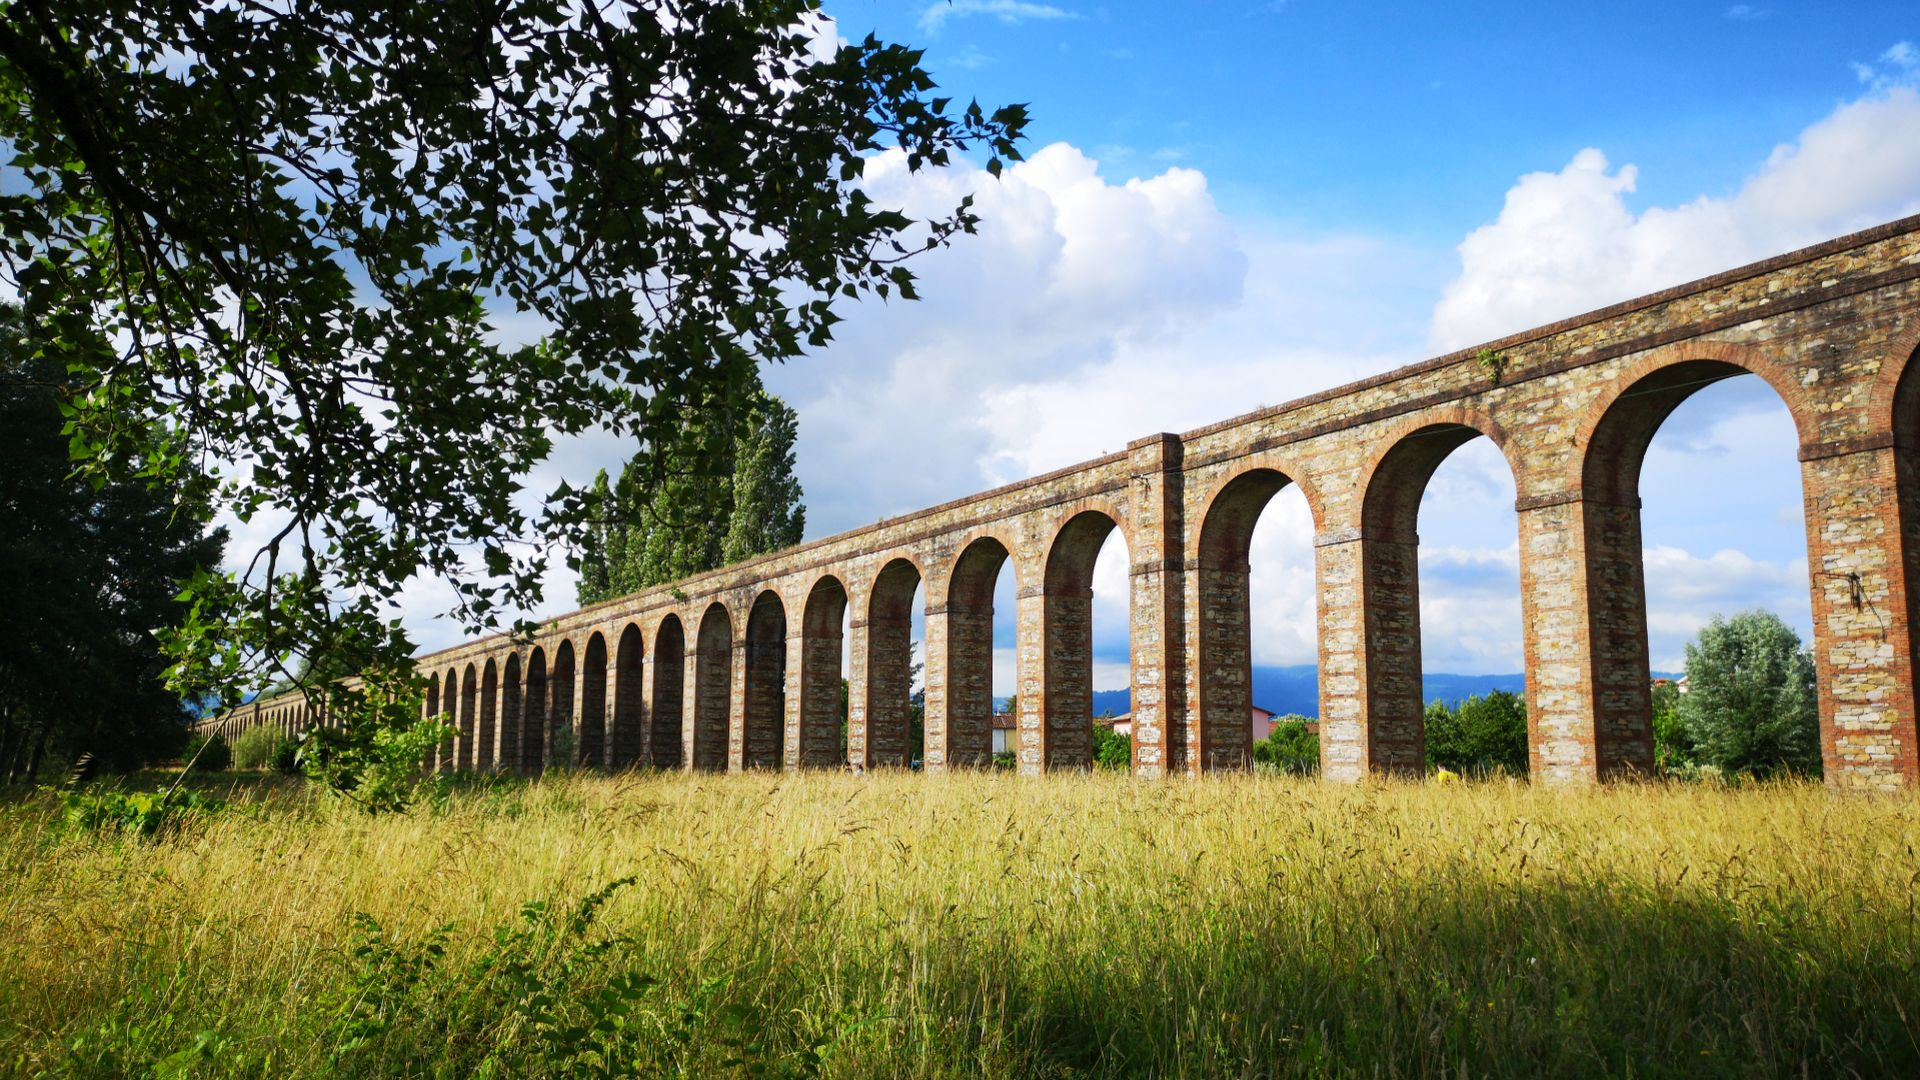 Nottolini aqueduct in the Lucca countryside